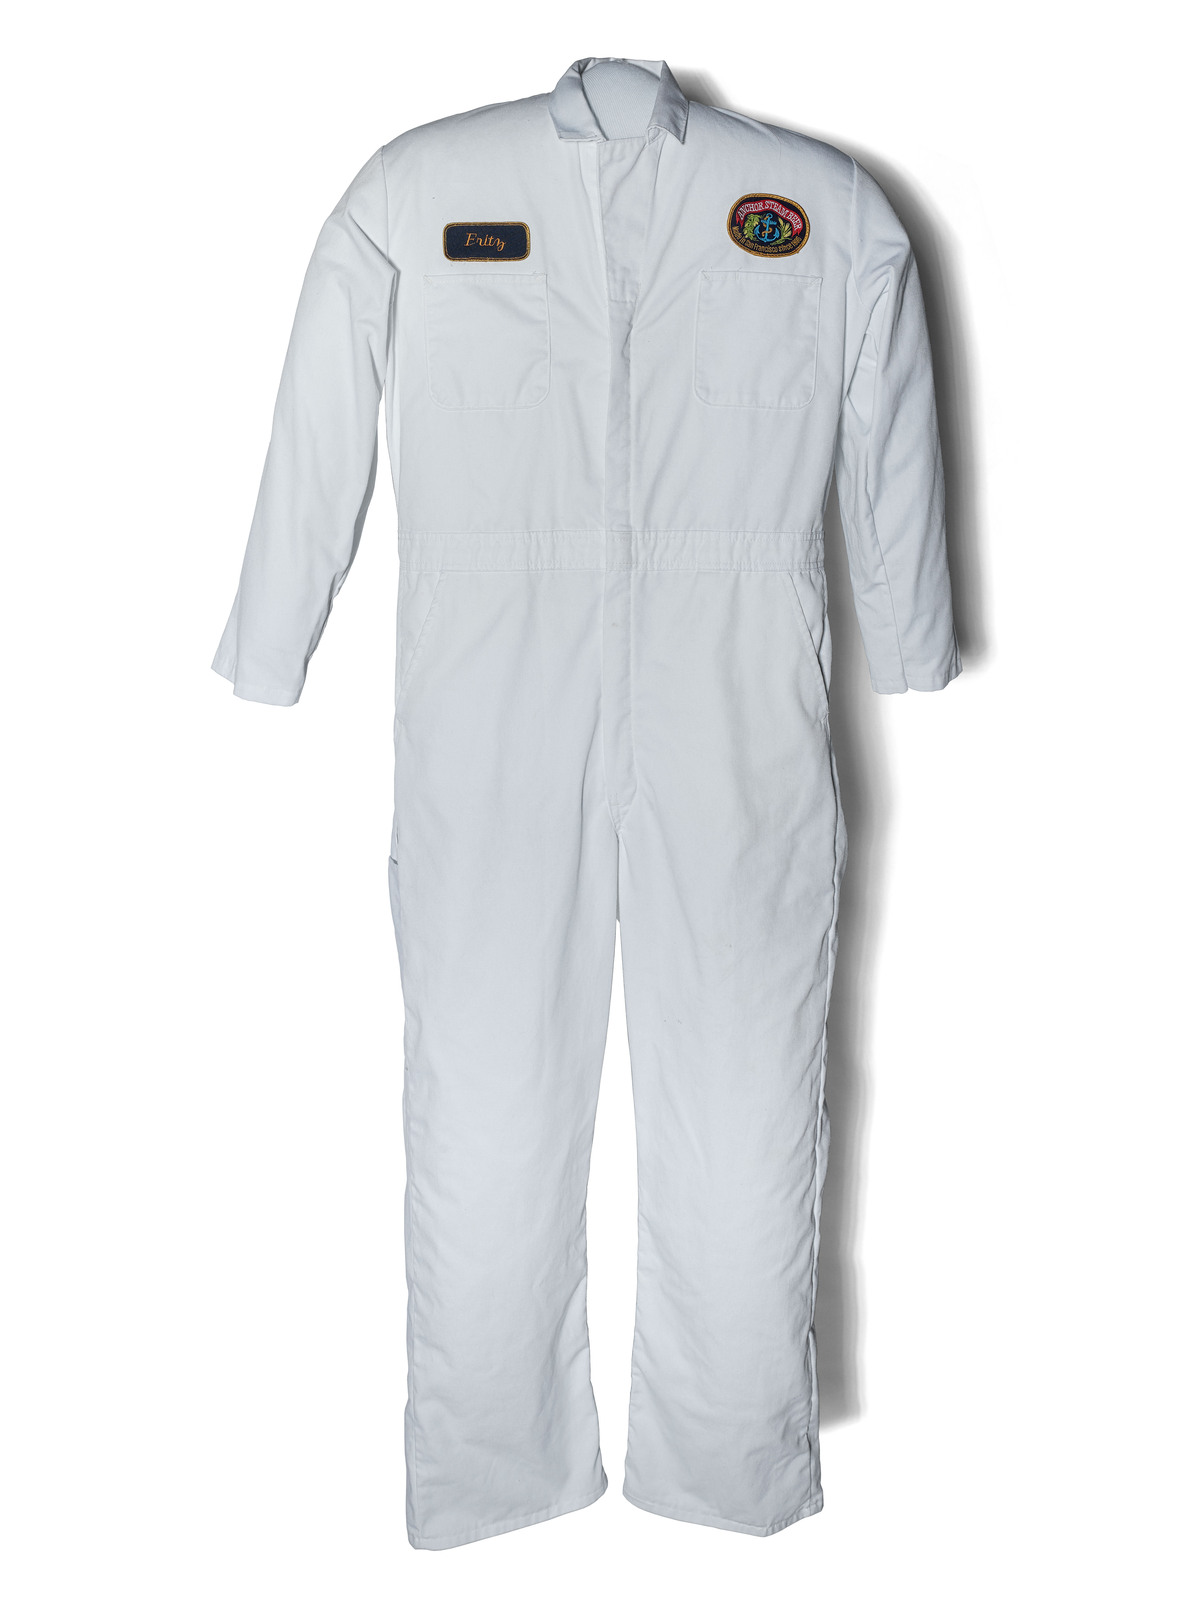 Fritz Maytag's coveralls from Anchor Brewing are part of the Smithsonian beer history collection. Courtesy of the National Museum of American History.